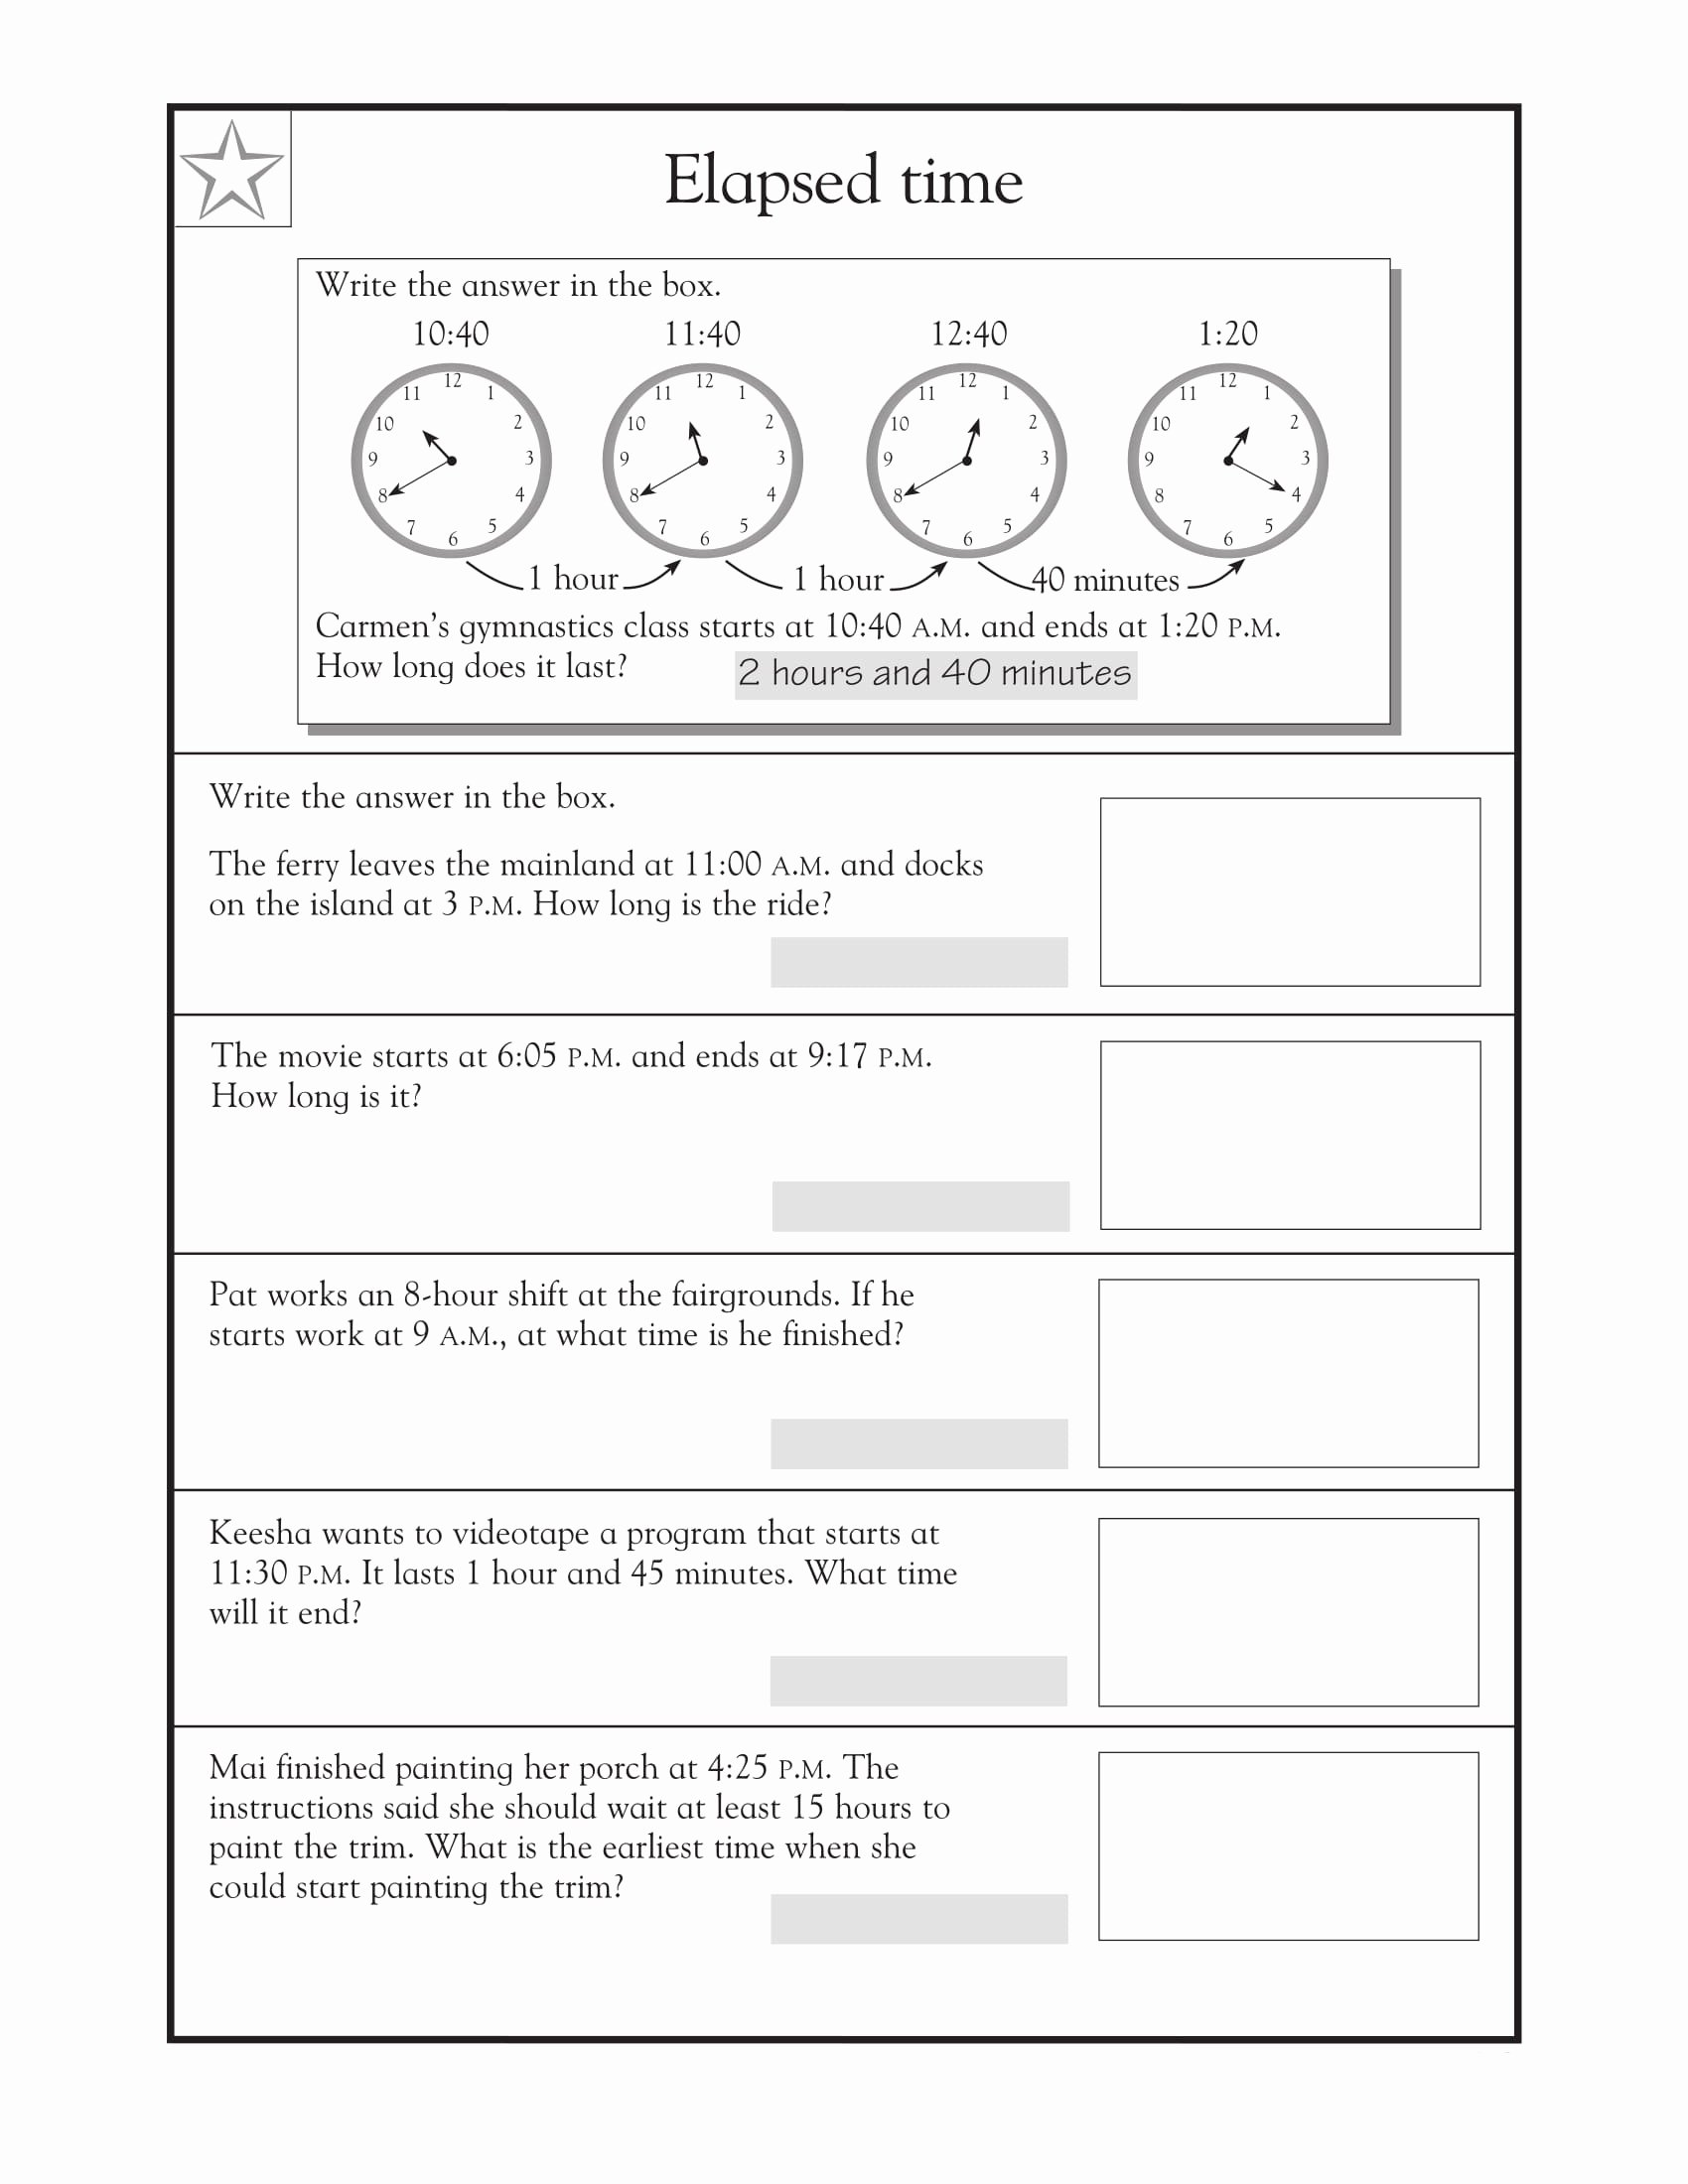 Real World Math Problems Worksheets Printable 4th Grade Math Word Problems Best Coloring Pages for Kids